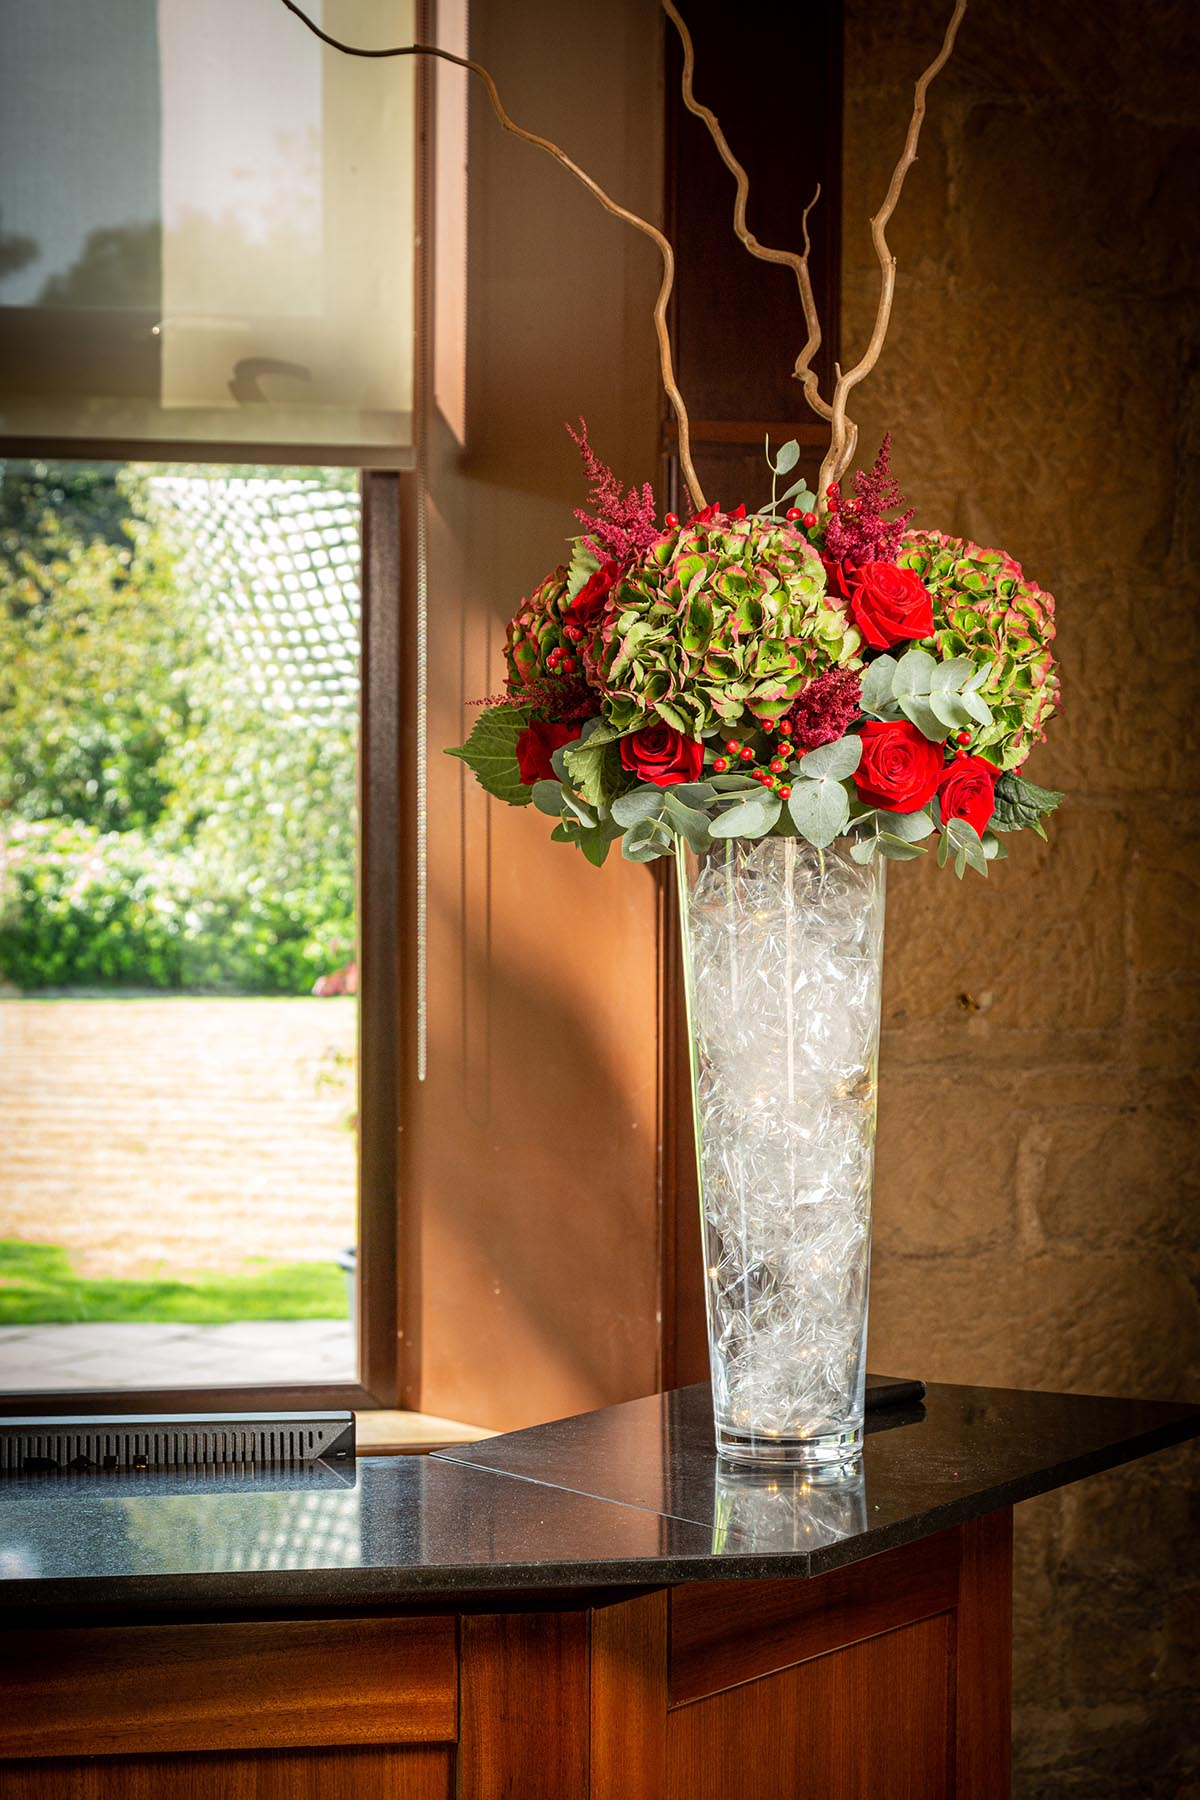 A tall glass vase with hydrangea, red roses and willow on the reception desk at Glenbervie House Hotel, Larbert